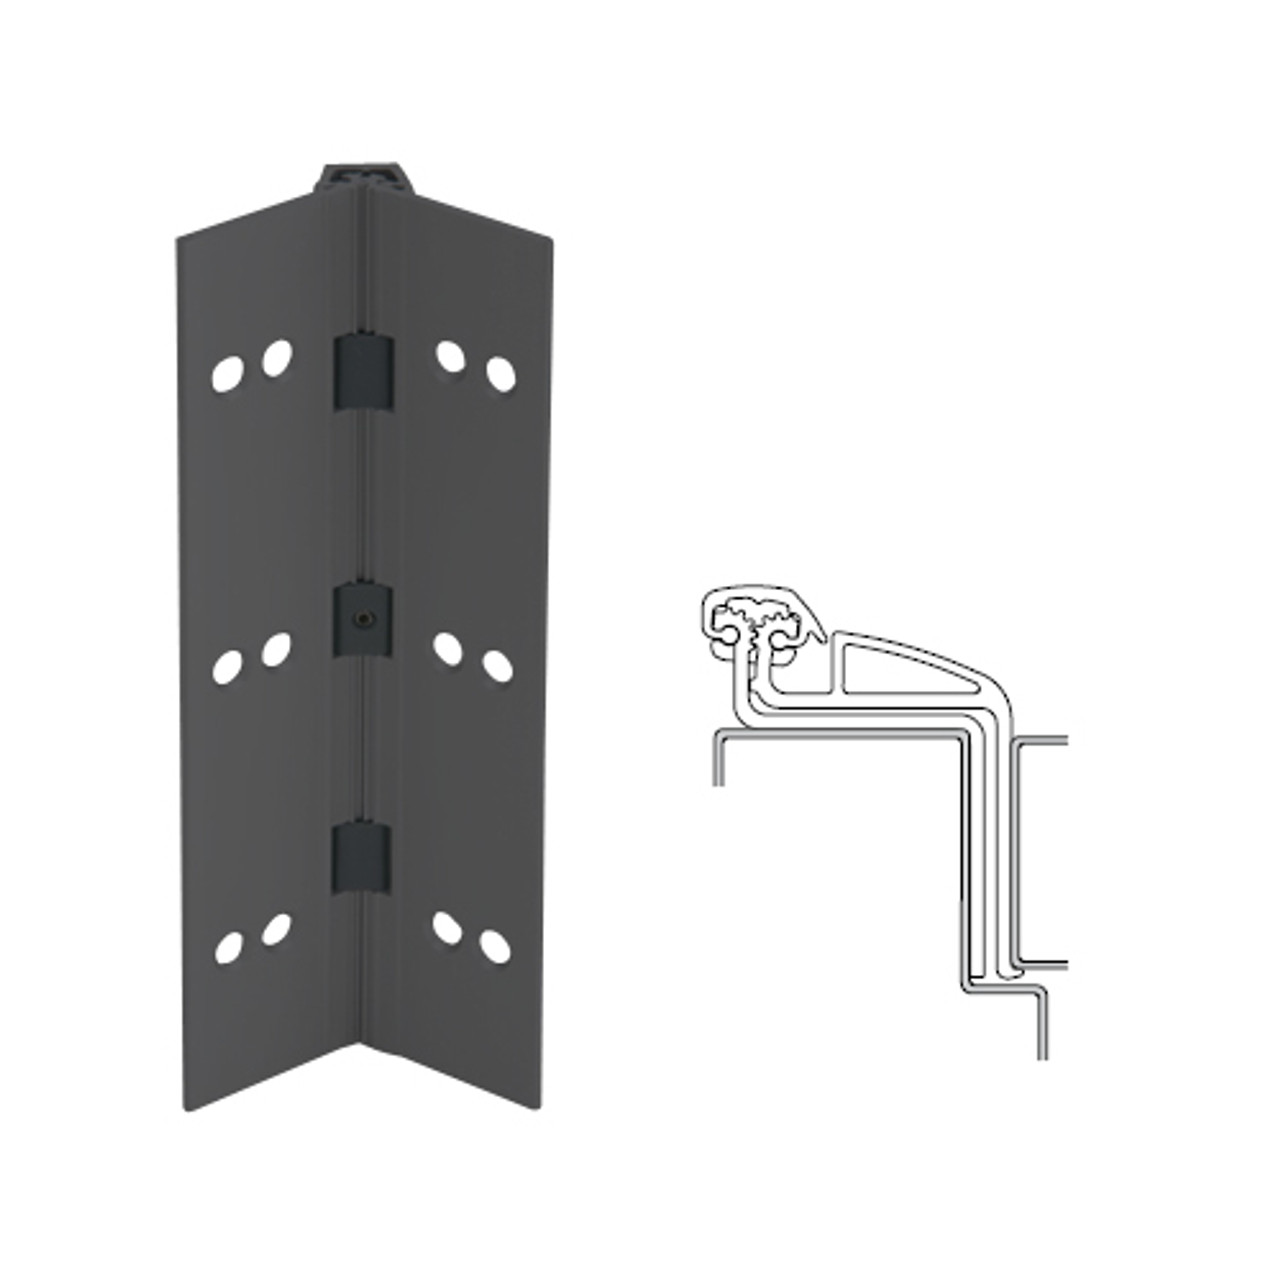 041XY-315AN-85-TFWD IVES Full Mortise Continuous Geared Hinges with Thread Forming Screws in Anodized Black